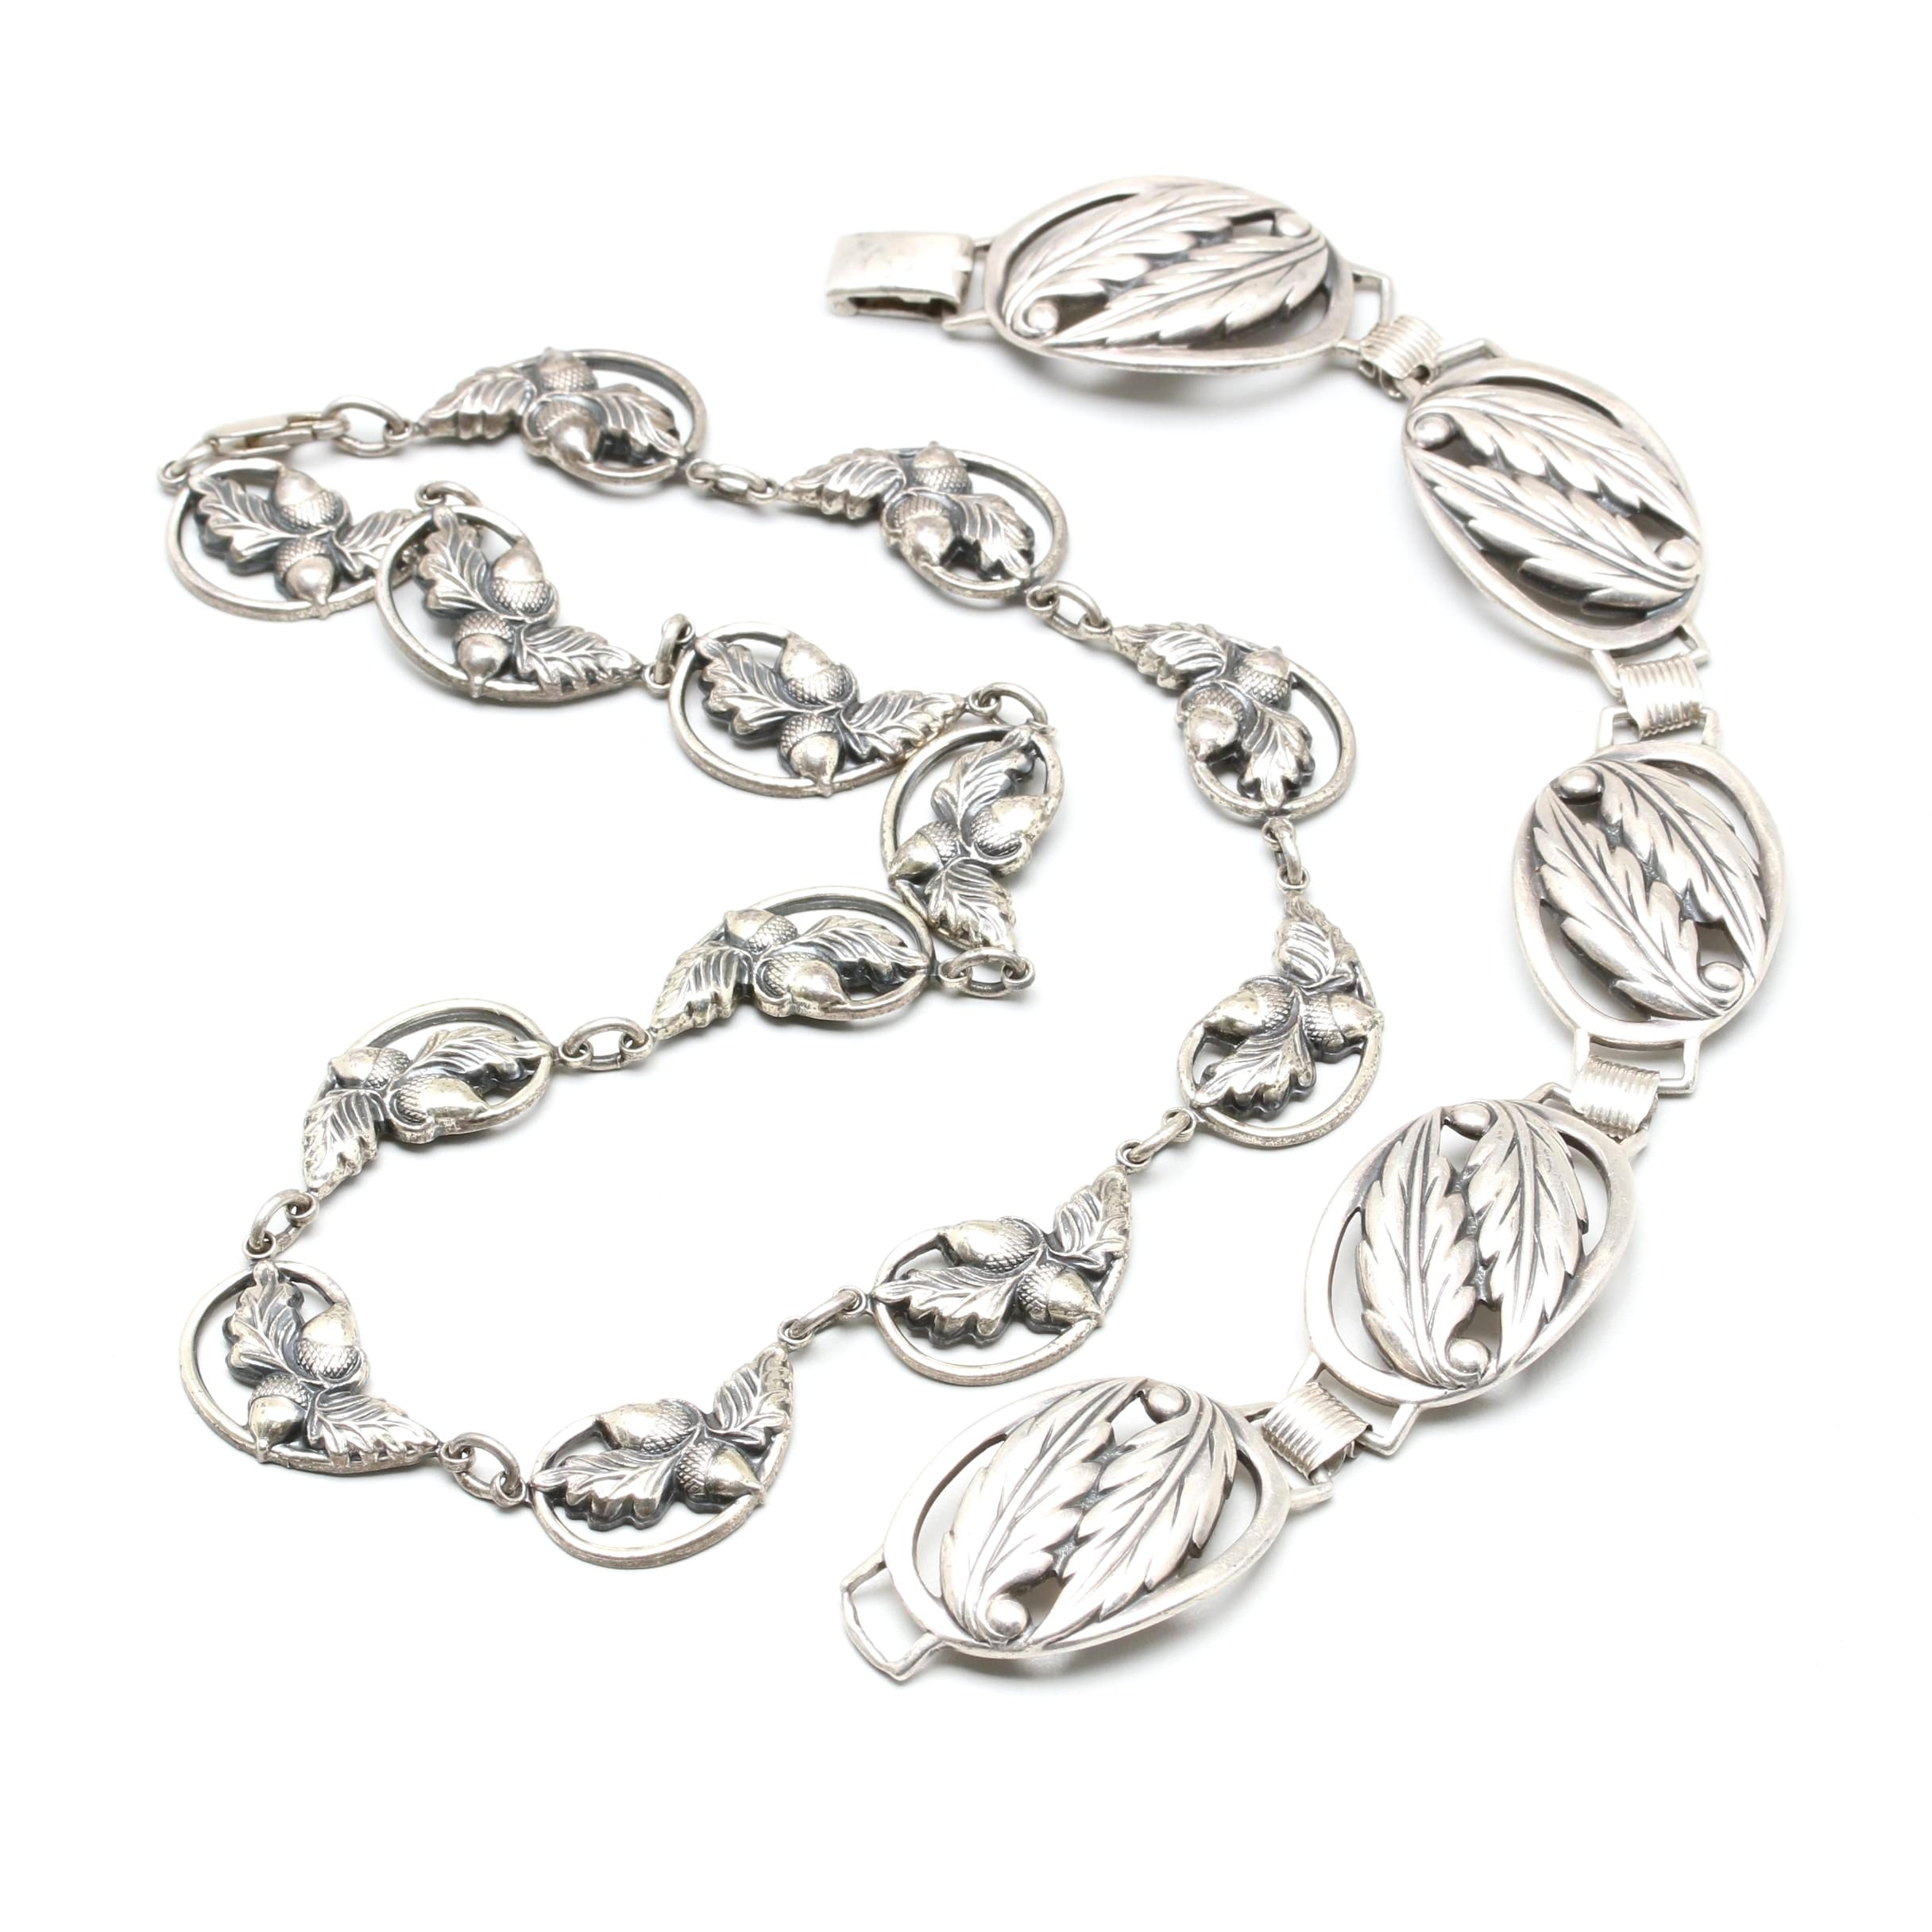 Danecraft Sterling Silver Foliate Bracelet and Necklace